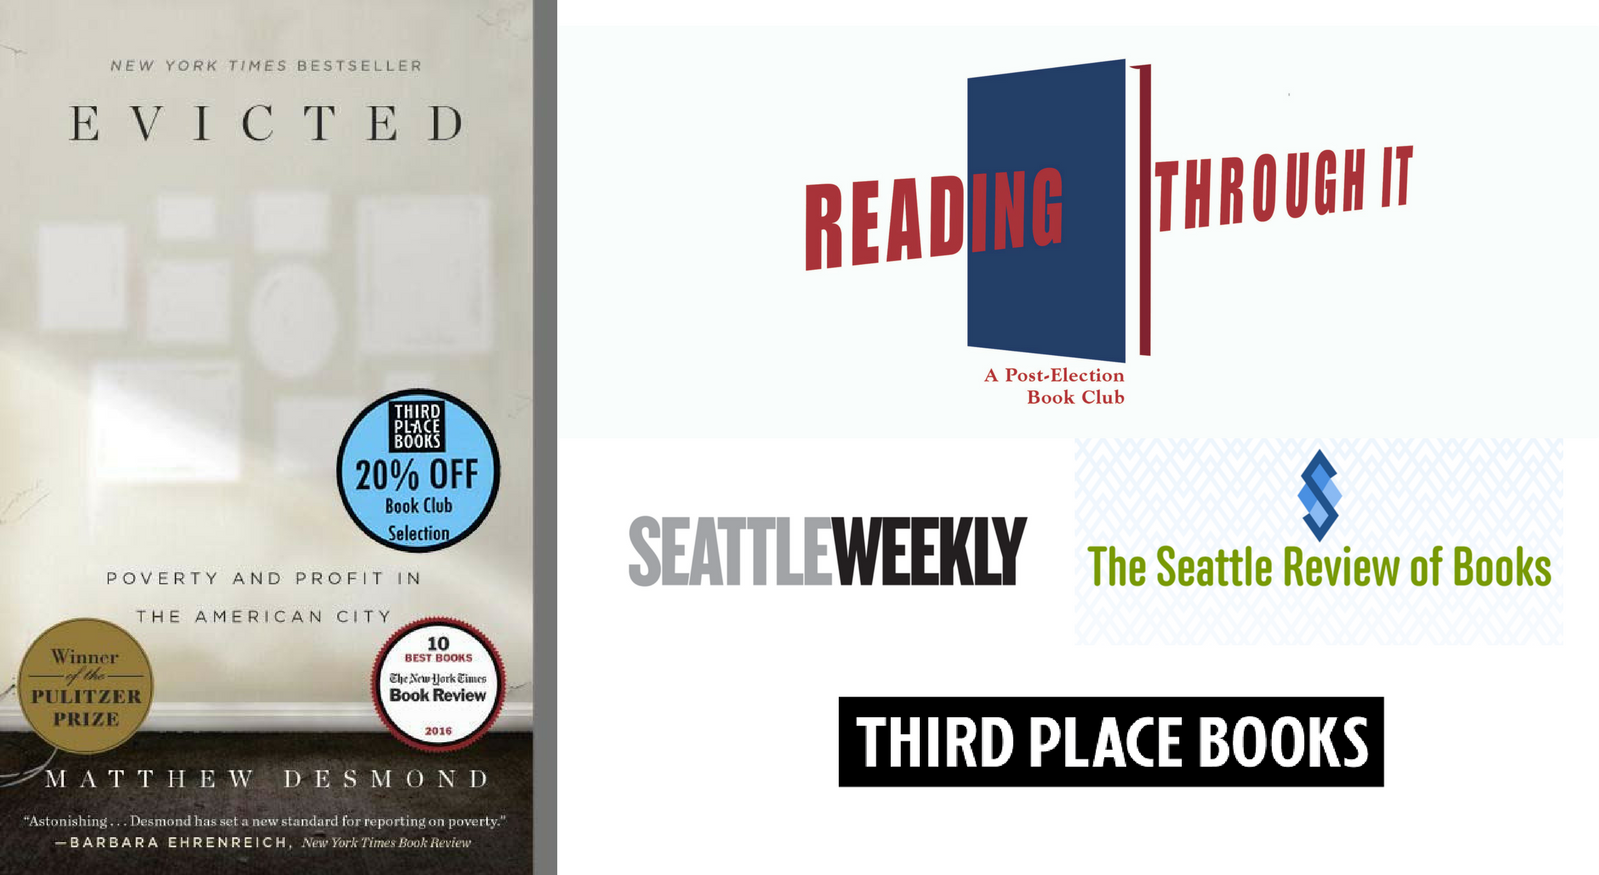 Reading Through It Book Club - Evicted | Third Place Books